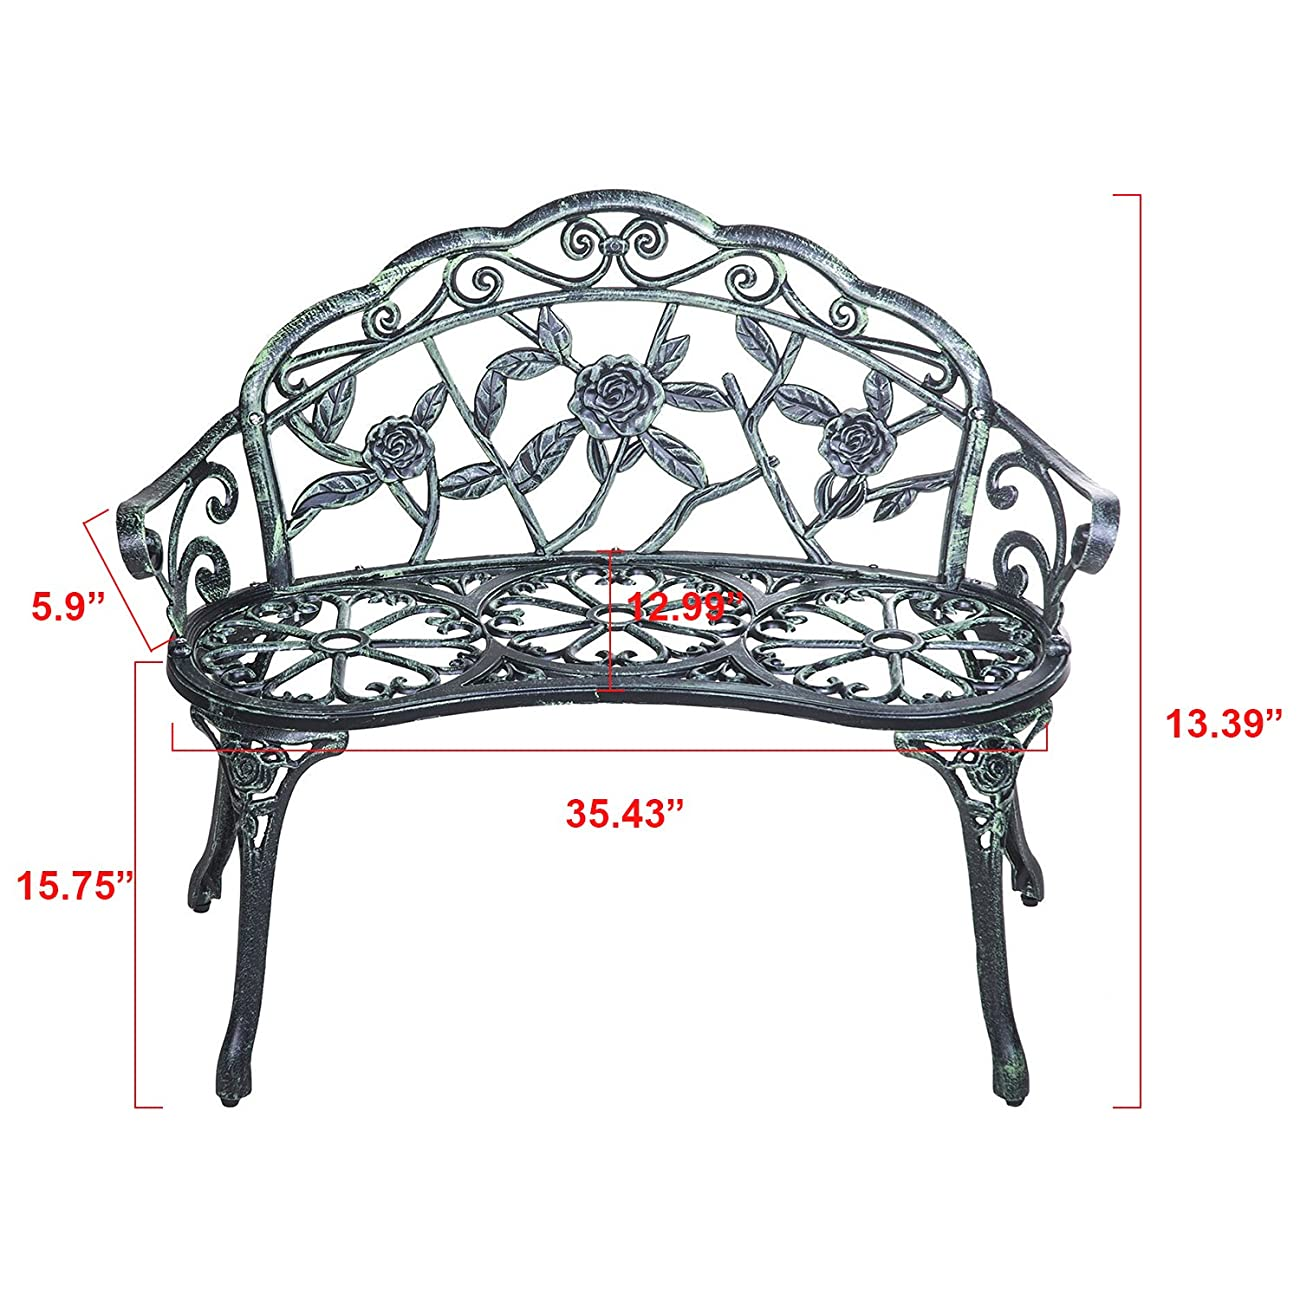 Merax Cast Iron Antique Rose Style outdoor Patio Garden Park Bench, Cast Iron 1